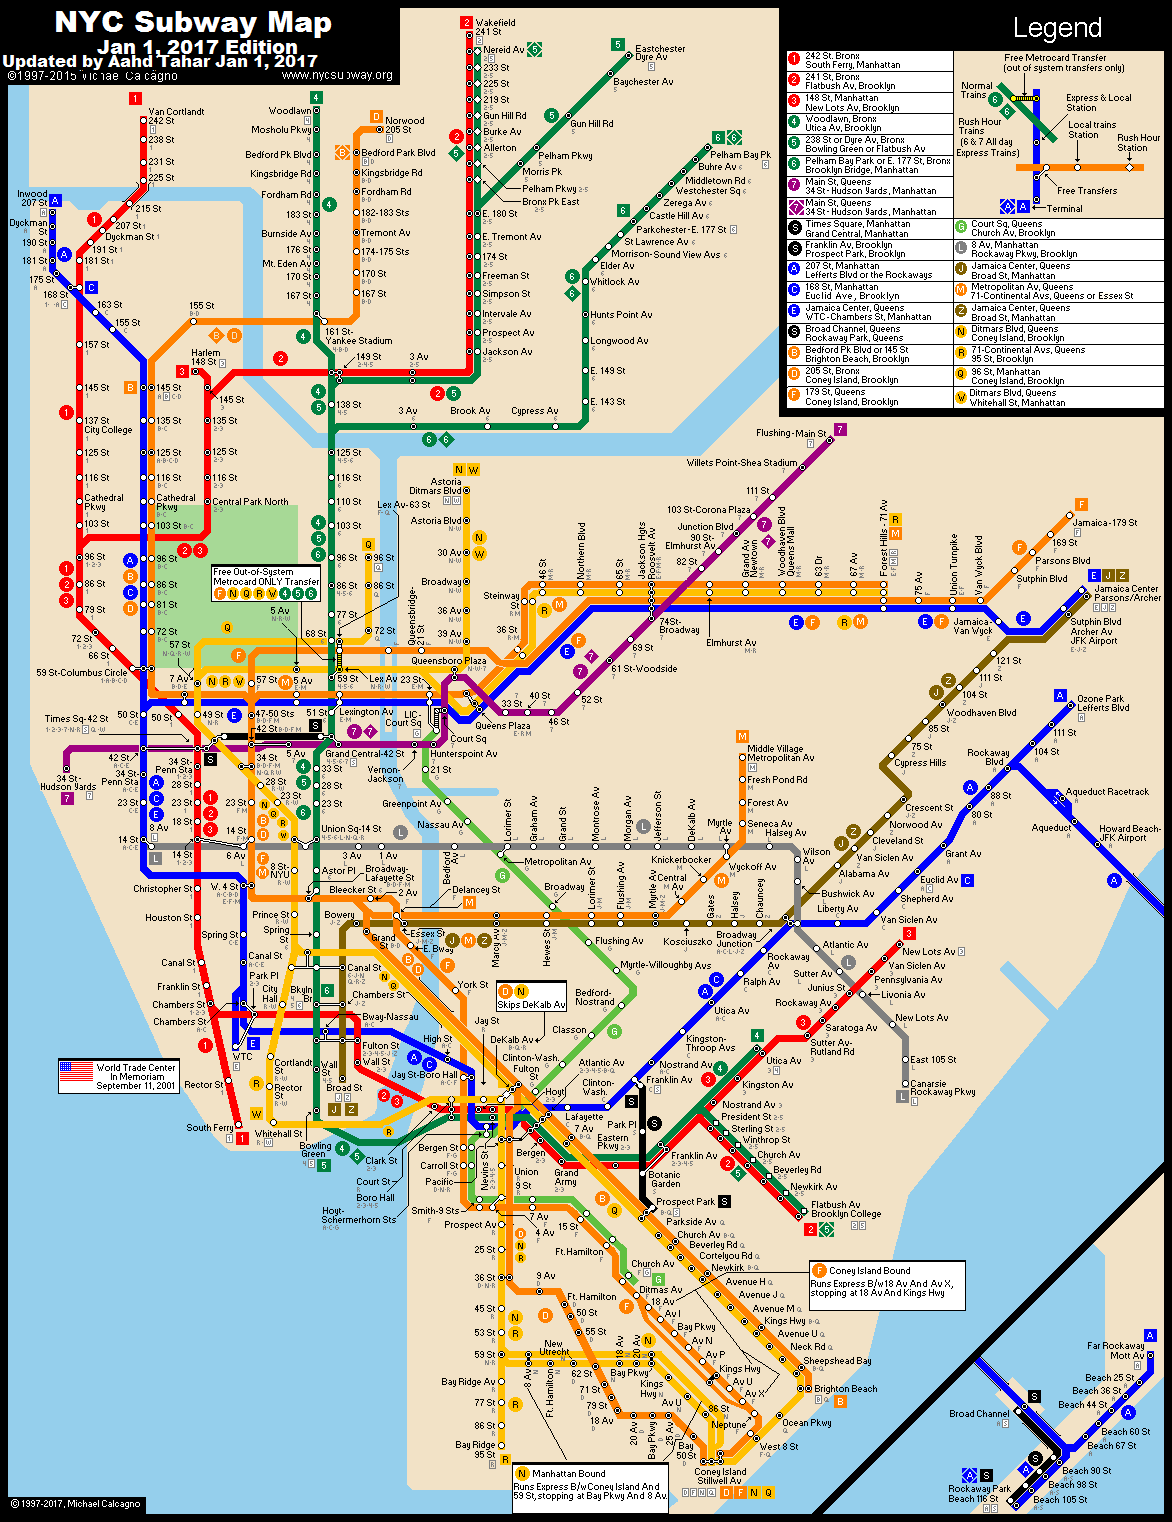 www.nycsubway.org: New York City Subway Route Map by Michael ...